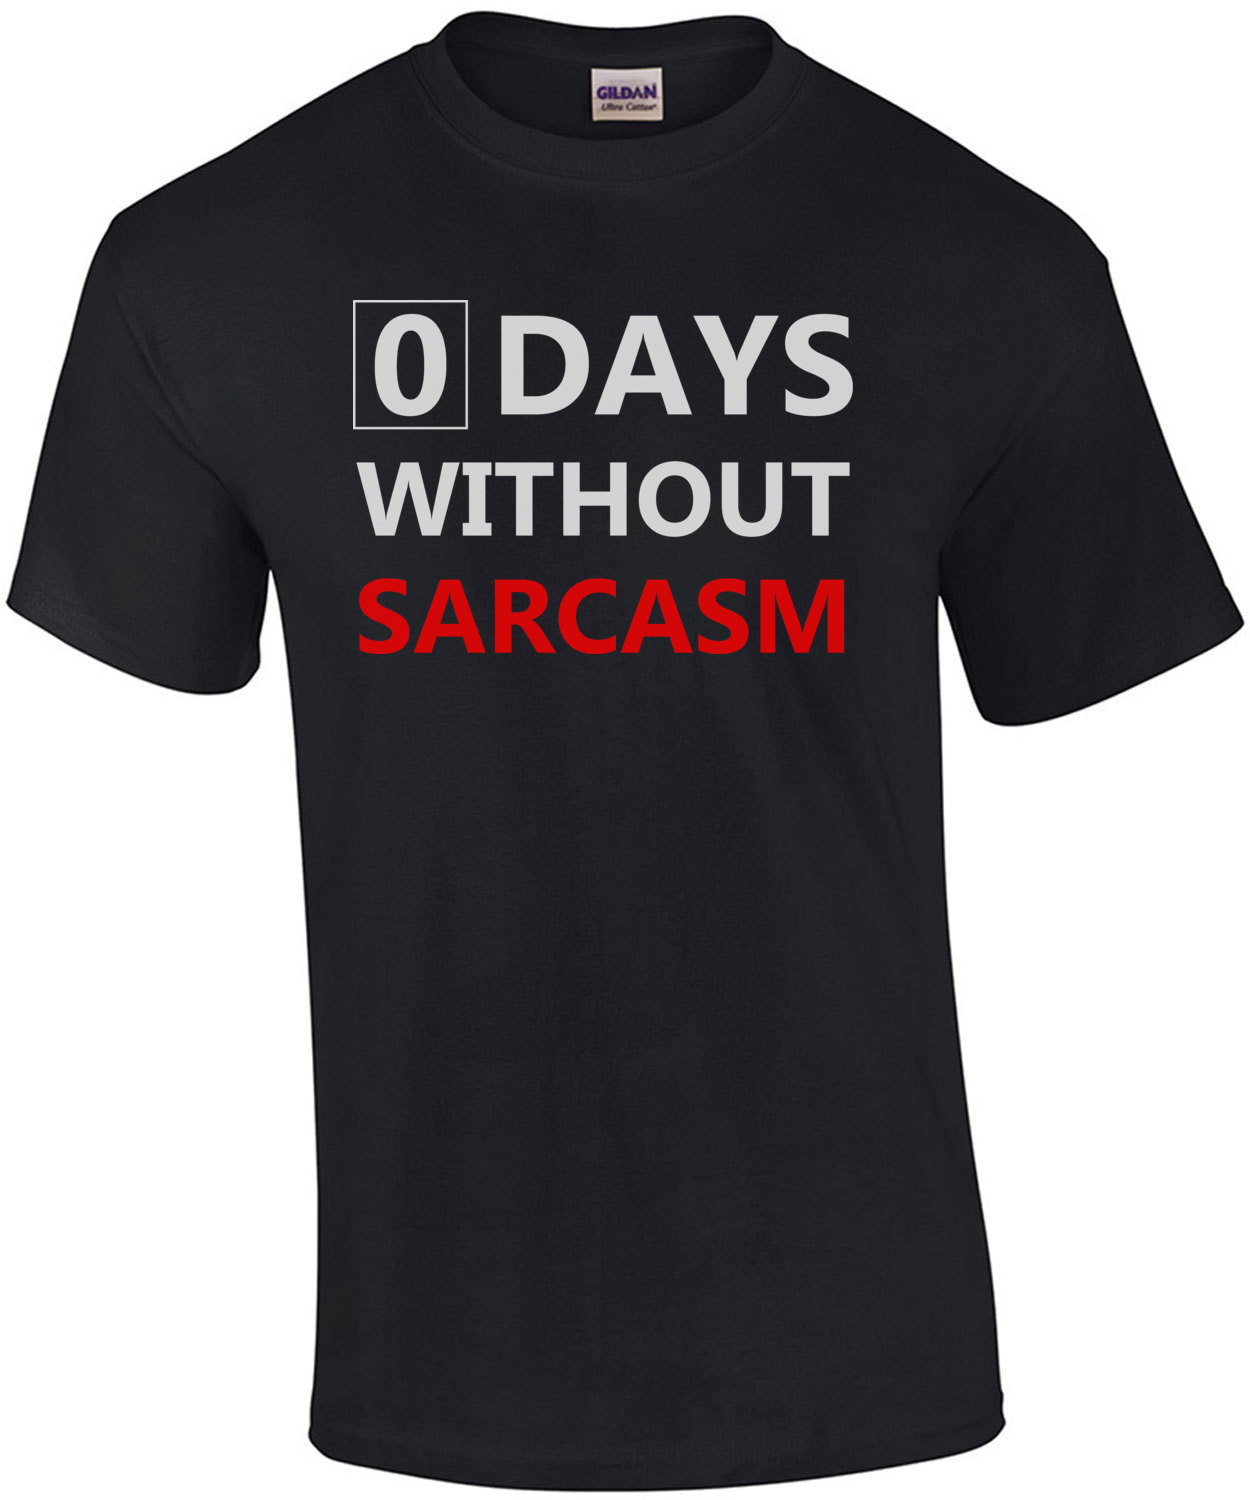 0 days without sarcasm - funny sarcastic t-shirt